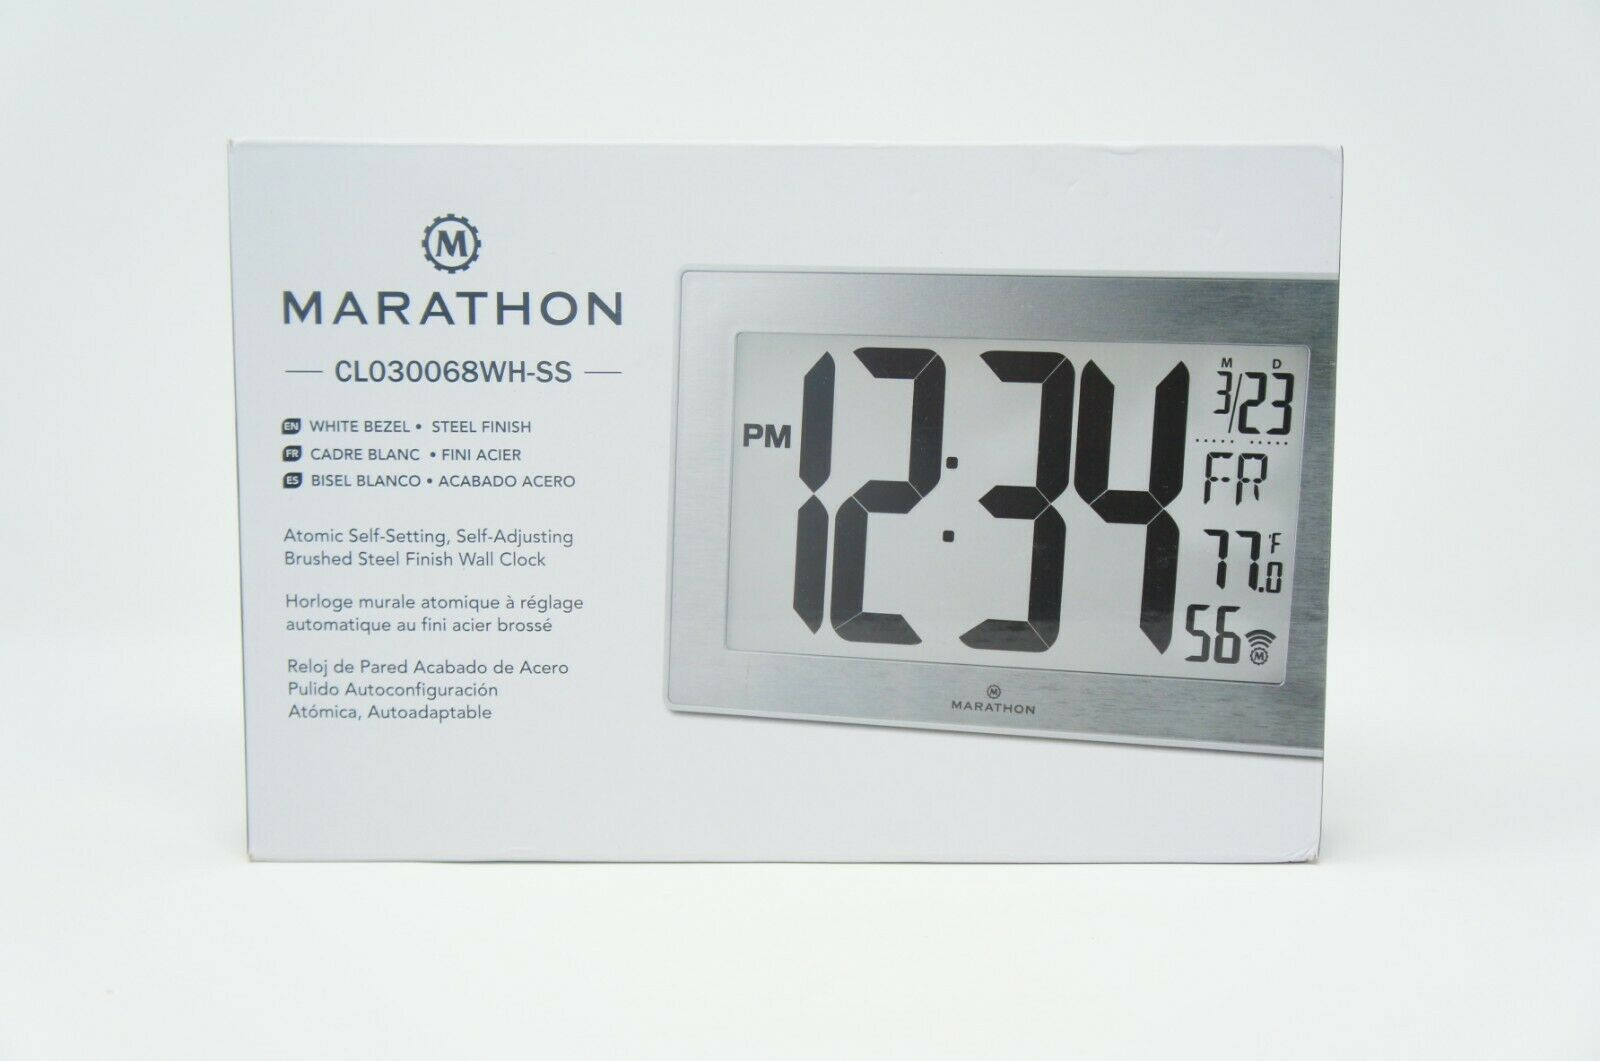 Marathon CL030068WH-SS Slim Panoramic Atomic Wall Clock with Table Stand (Like New)